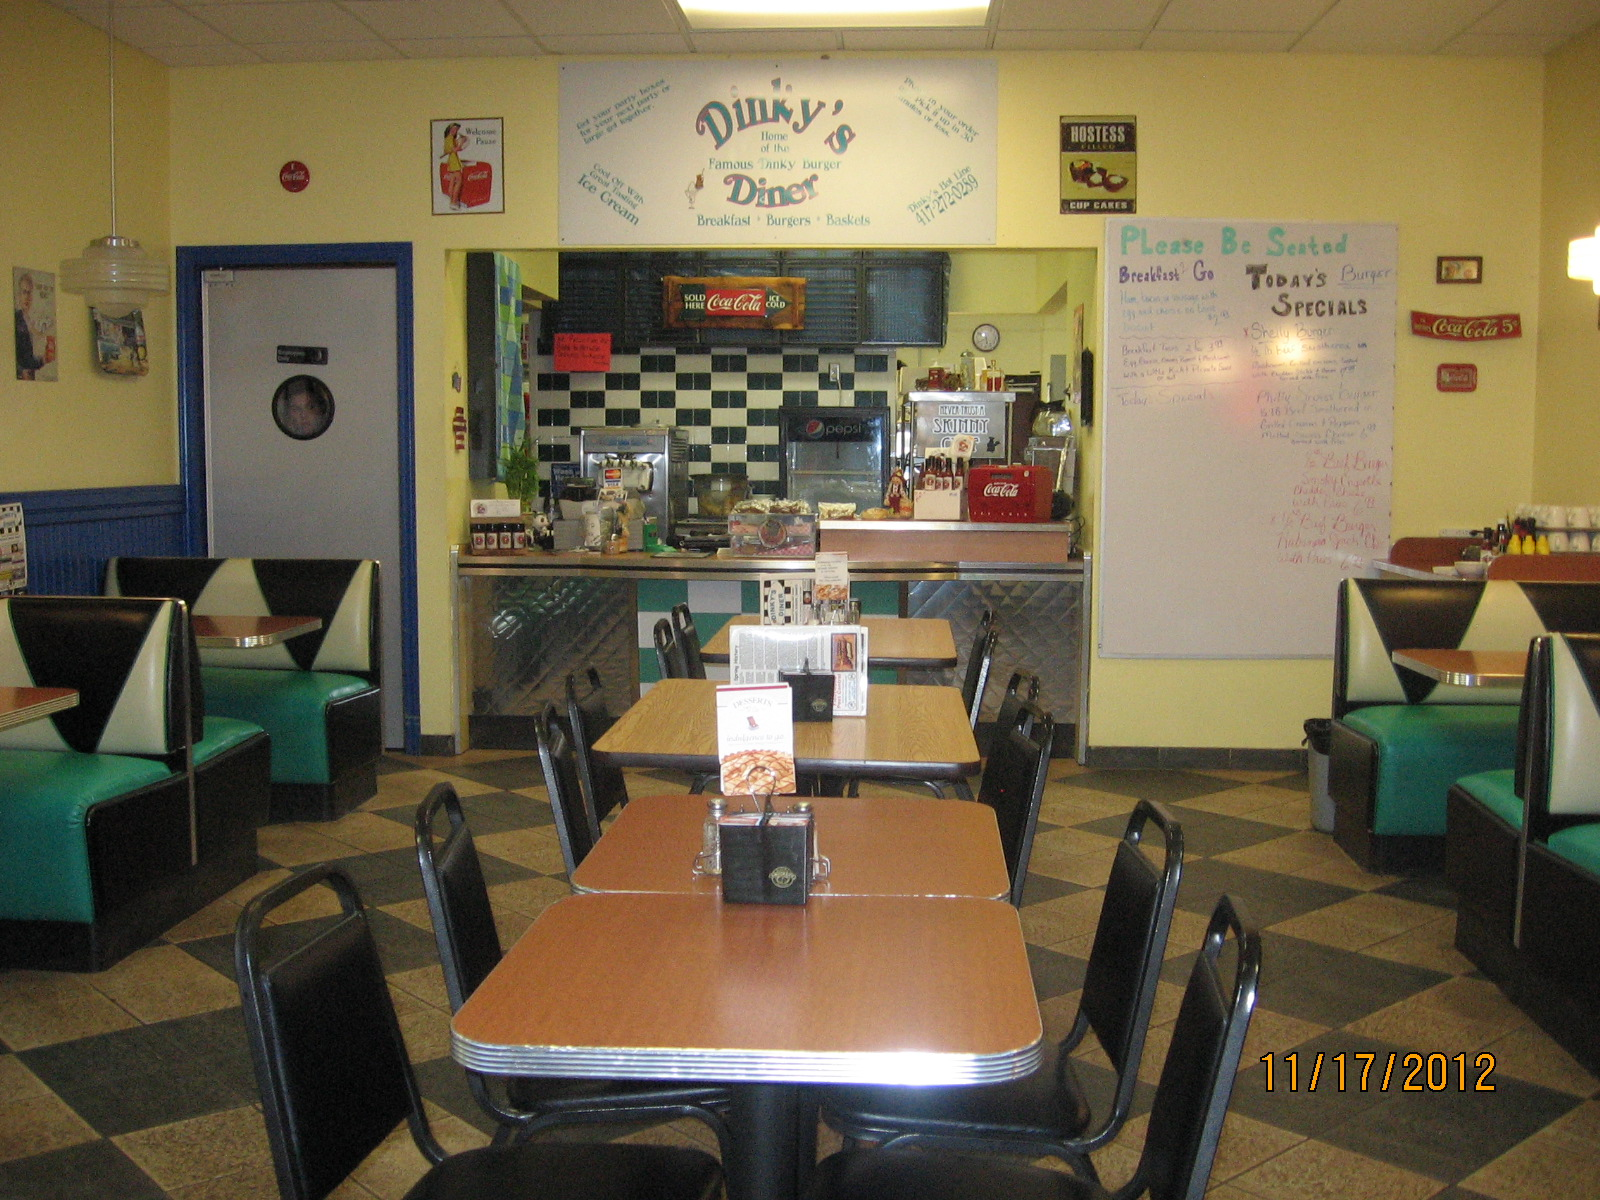 Inside Picture of Dinkys Diner